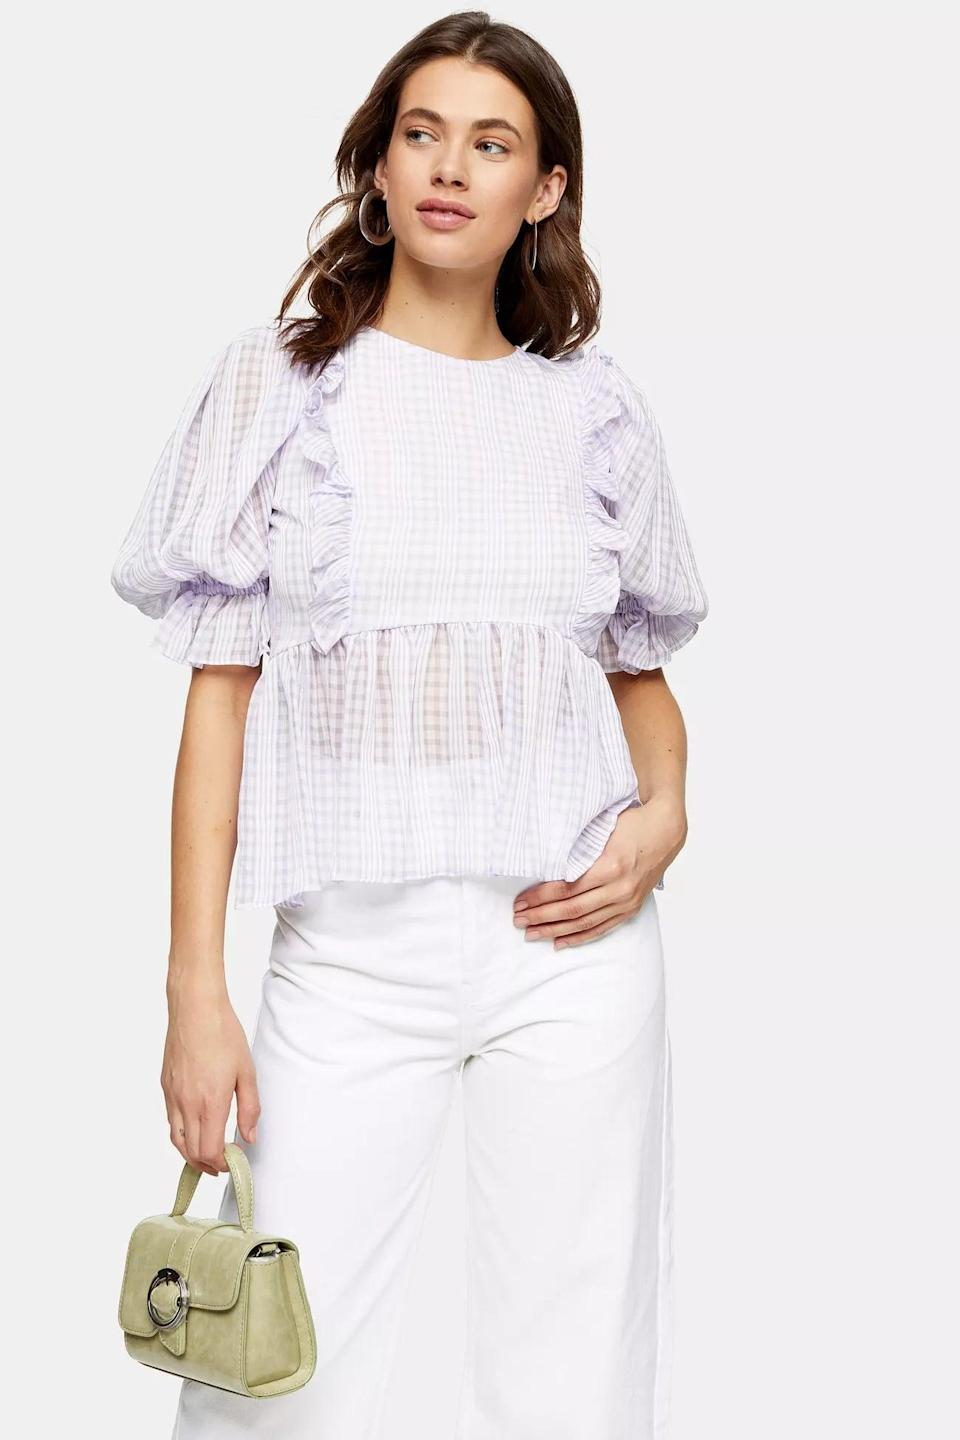 """<p>This <a href=""""https://www.popsugar.com/buy/Topshop-Lilac-Gingham-Puff-Sleeve-Blouse-583880?p_name=Topshop%20Lilac%20Gingham%20Puff%20Sleeve%20Blouse&retailer=us.topshop.com&pid=583880&price=44&evar1=fab%3Aus&evar9=47565783&evar98=https%3A%2F%2Fwww.popsugar.com%2Ffashion%2Fphoto-gallery%2F47565783%2Fimage%2F47566063%2FTopshop-Lilac-Gingham-Puff-Sleeve-Blouse&list1=tops%2Csummer%2Csummer%20fashion%2Cfashion%20shopping&prop13=mobile&pdata=1"""" class=""""link rapid-noclick-resp"""" rel=""""nofollow noopener"""" target=""""_blank"""" data-ylk=""""slk:Topshop Lilac Gingham Puff Sleeve Blouse"""">Topshop Lilac Gingham Puff Sleeve Blouse</a> ($44, originally $55) is all about the details.</p>"""